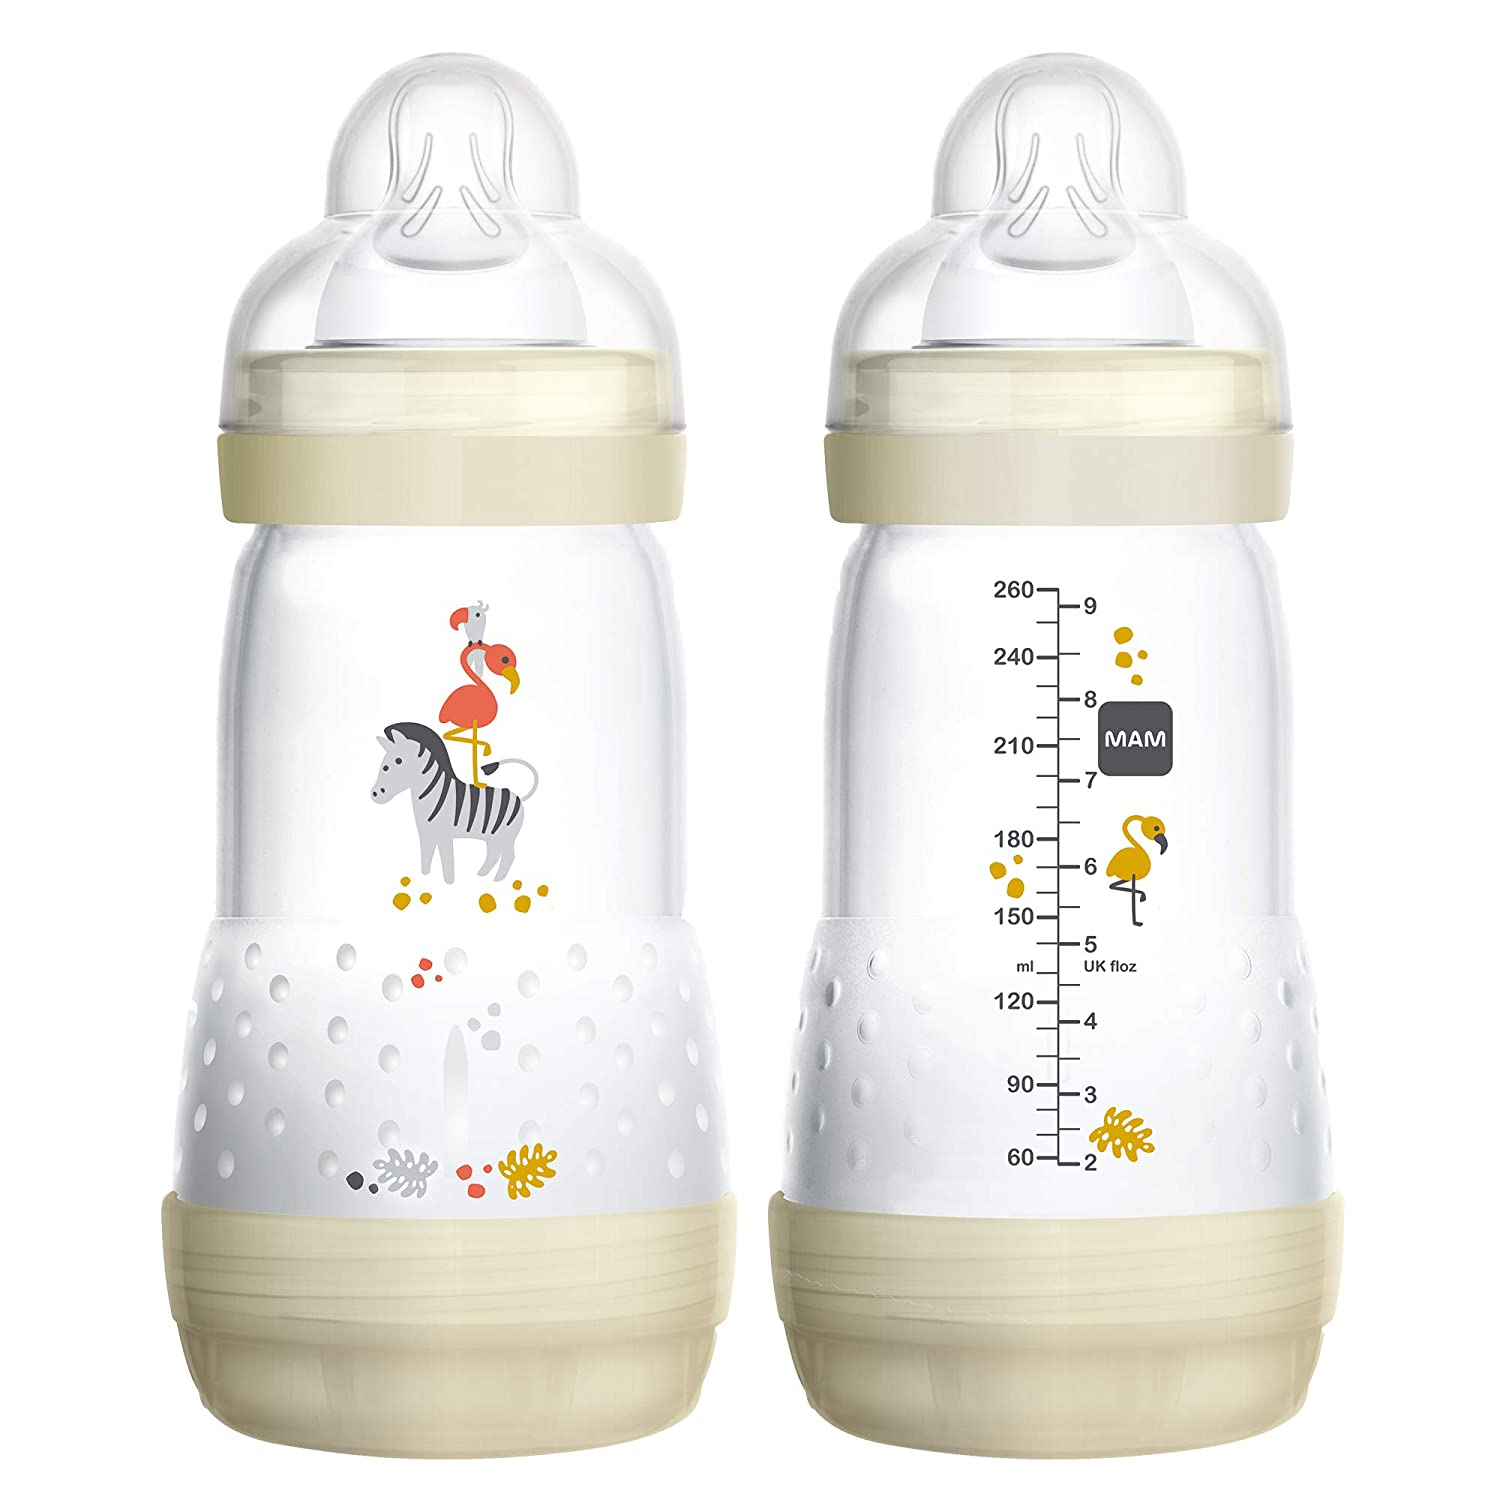 MAM Baby Bottles for Breastfed Babies